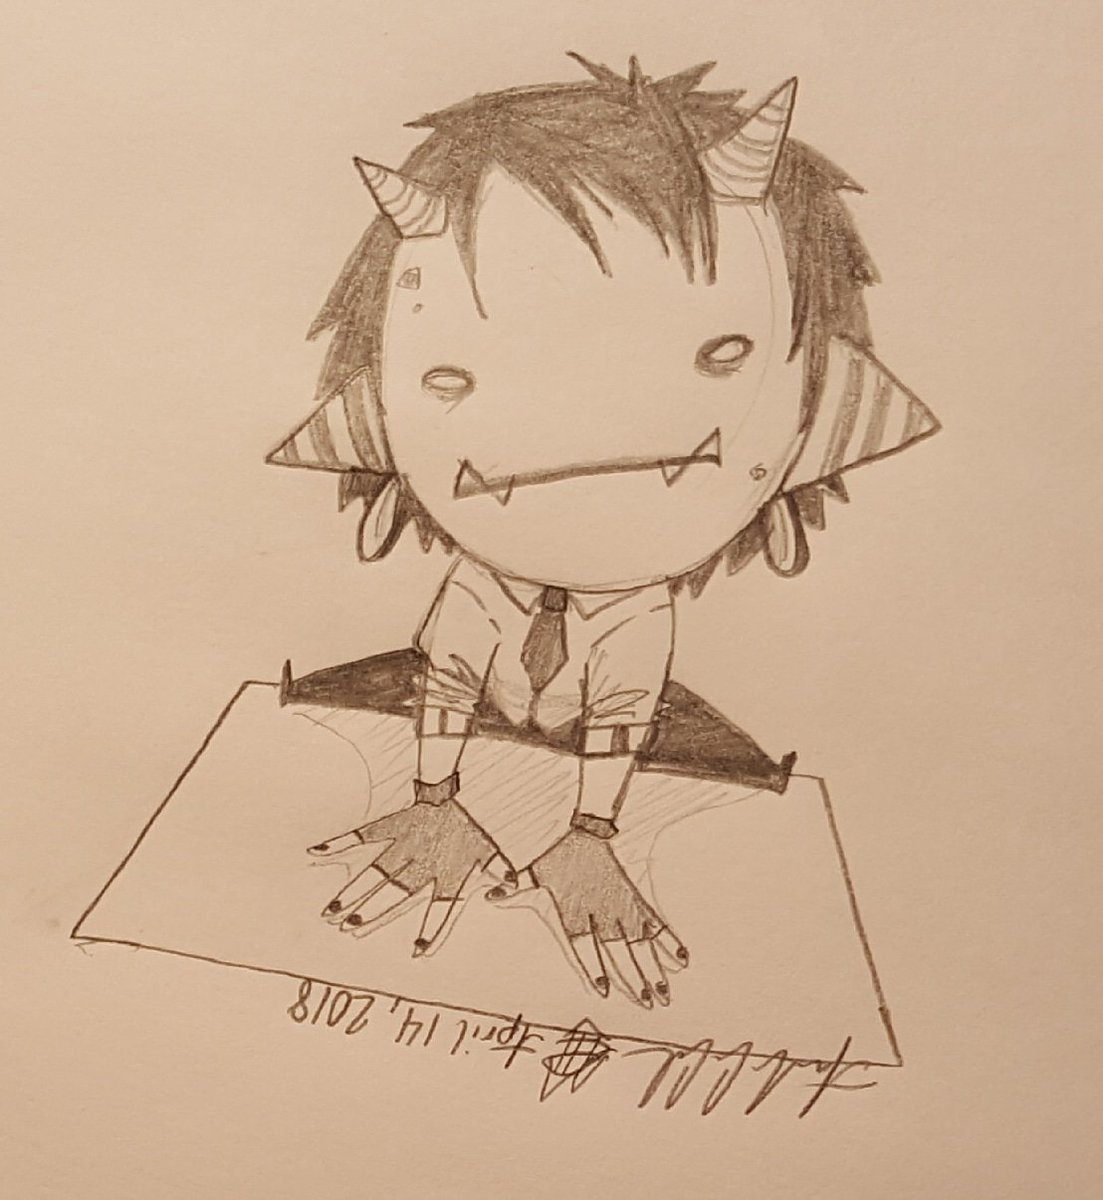 Crucabstractor On Twitter Daily Doodle 681 Doodle Daily Pencil